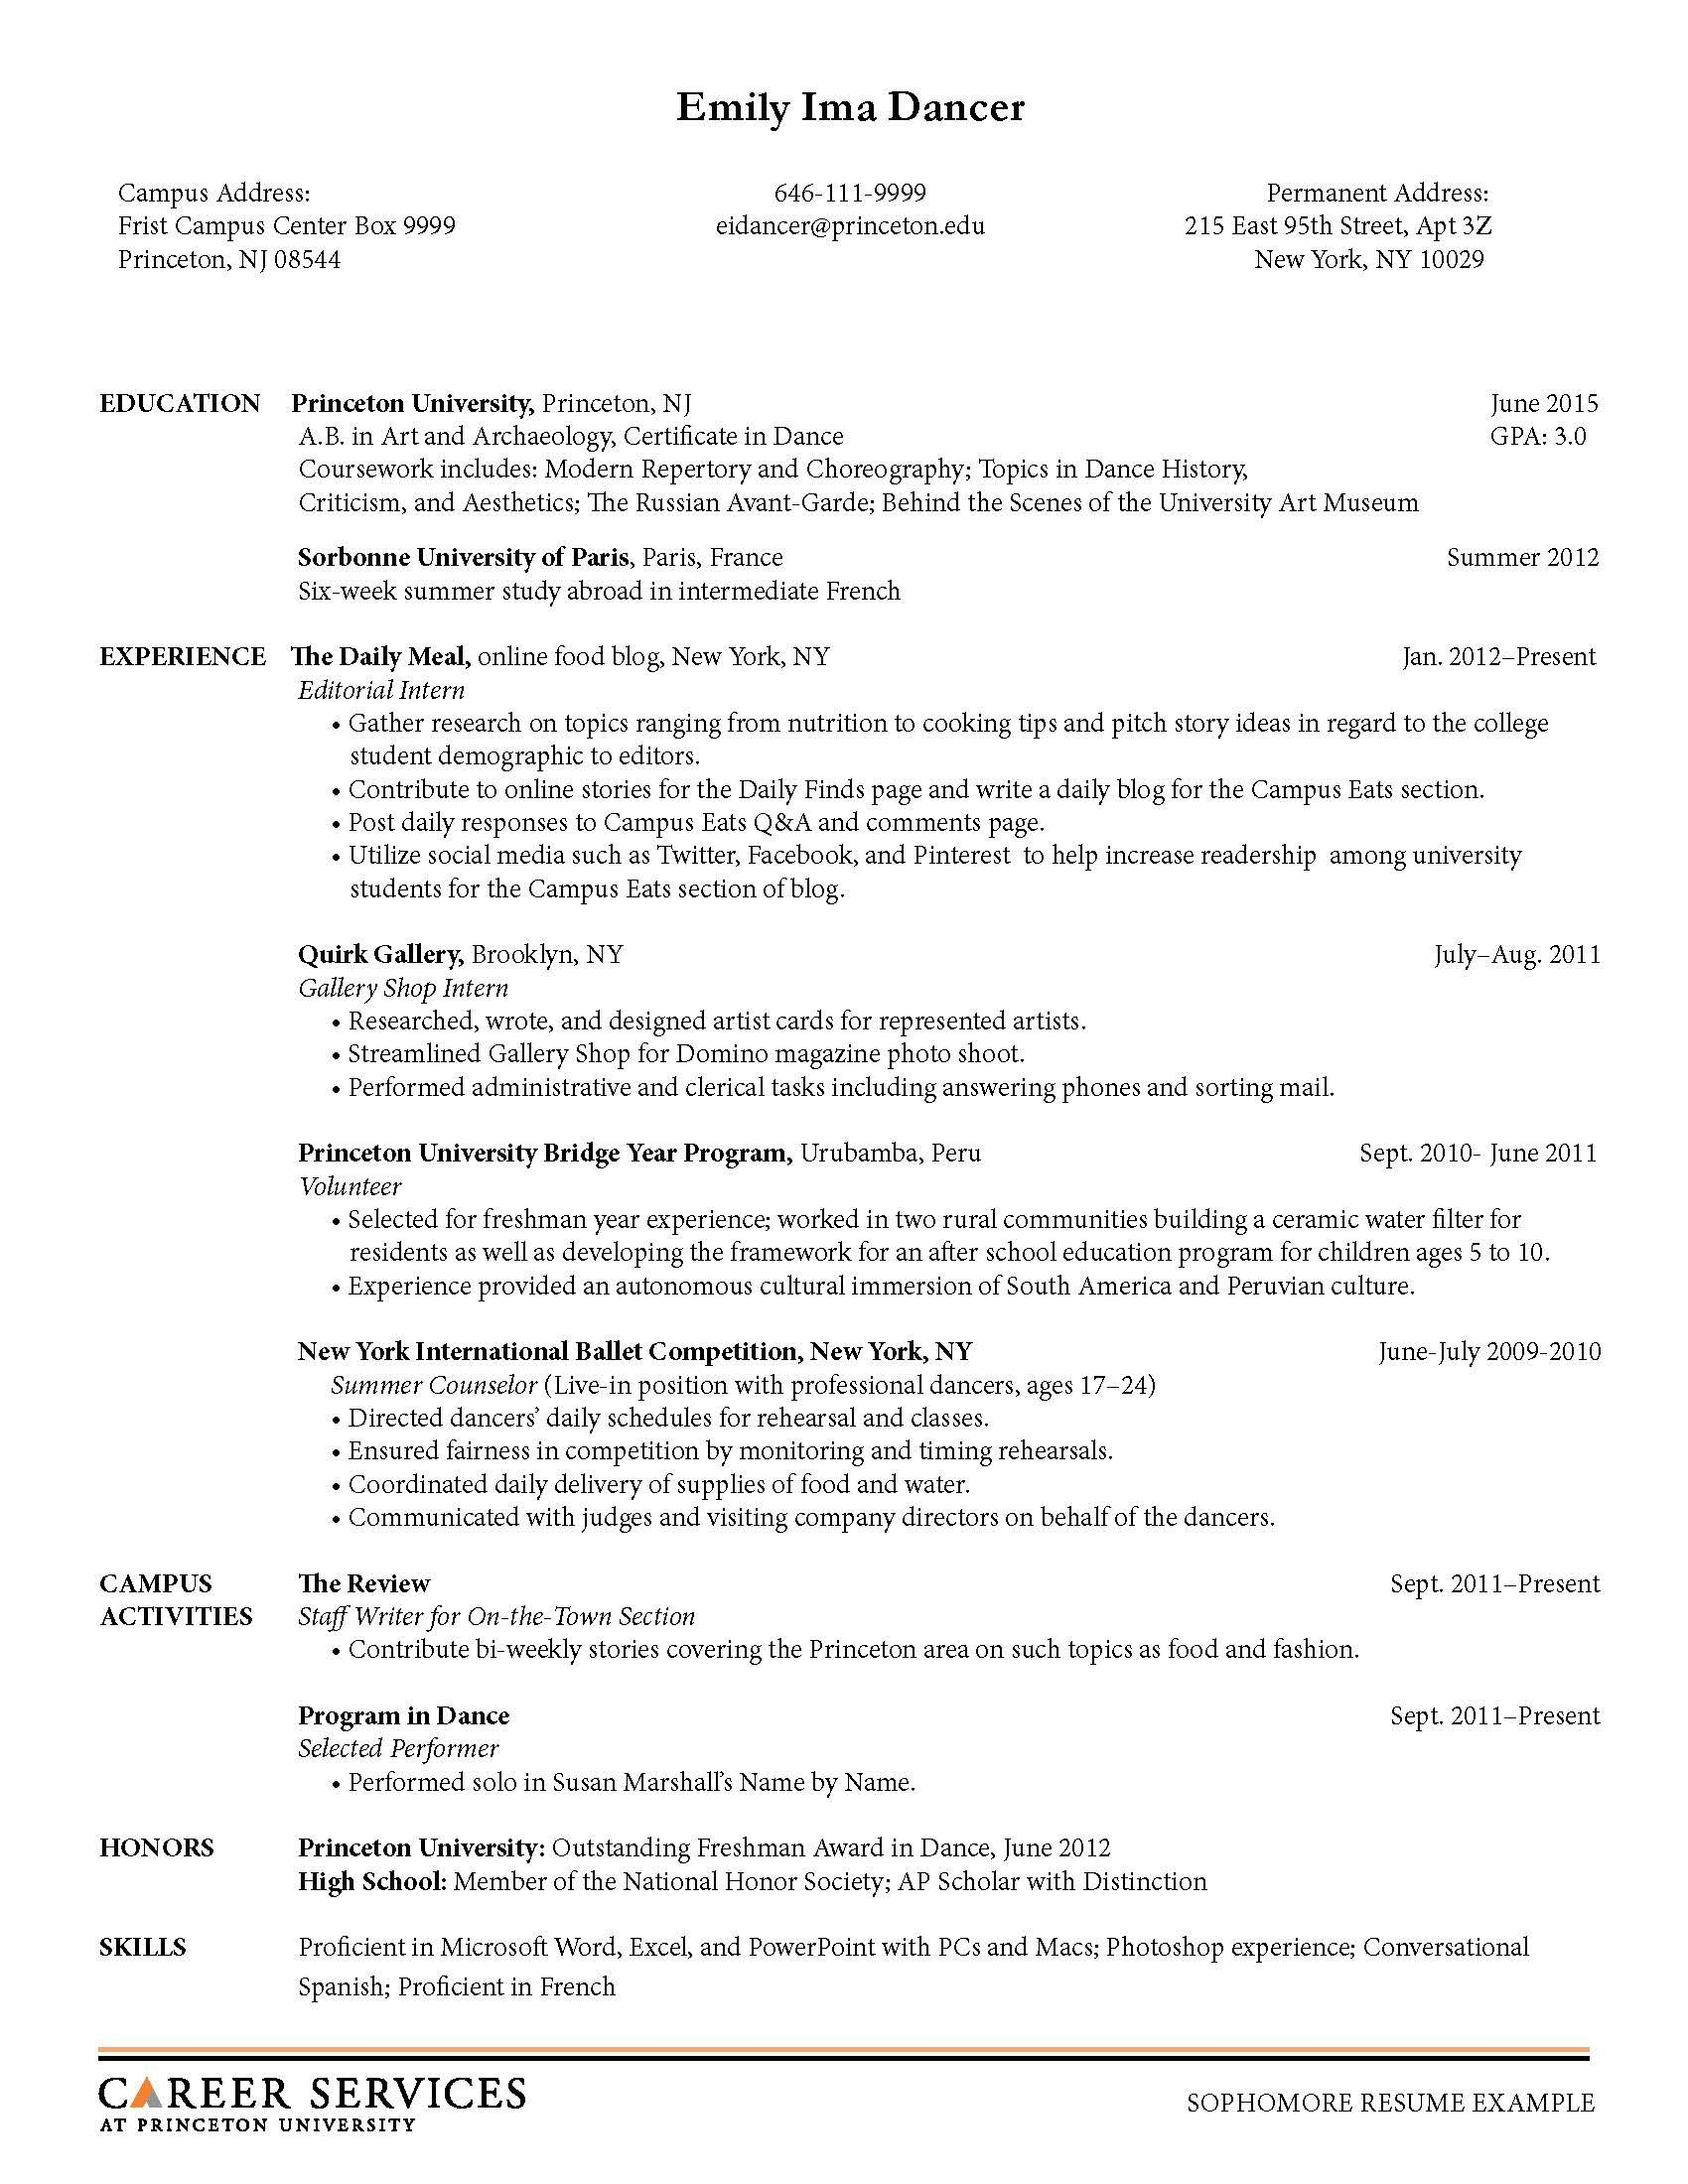 Opposenewapstandardsus  Terrific Sample Resume Resume And Career On Pinterest With Exquisite Medical Receptionist Resume Sample Besides Warehouse Supervisor Resume Sample Furthermore Sample Maintenance Resume With Beauteous Resume Text Also Case Manager Resume Objective In Addition Words To Describe Yourself On A Resume And Call Center Customer Service Representative Resume As Well As Federal Government Resume Sample Additionally Child Care Director Resume From Pinterestcom With Opposenewapstandardsus  Exquisite Sample Resume Resume And Career On Pinterest With Beauteous Medical Receptionist Resume Sample Besides Warehouse Supervisor Resume Sample Furthermore Sample Maintenance Resume And Terrific Resume Text Also Case Manager Resume Objective In Addition Words To Describe Yourself On A Resume From Pinterestcom